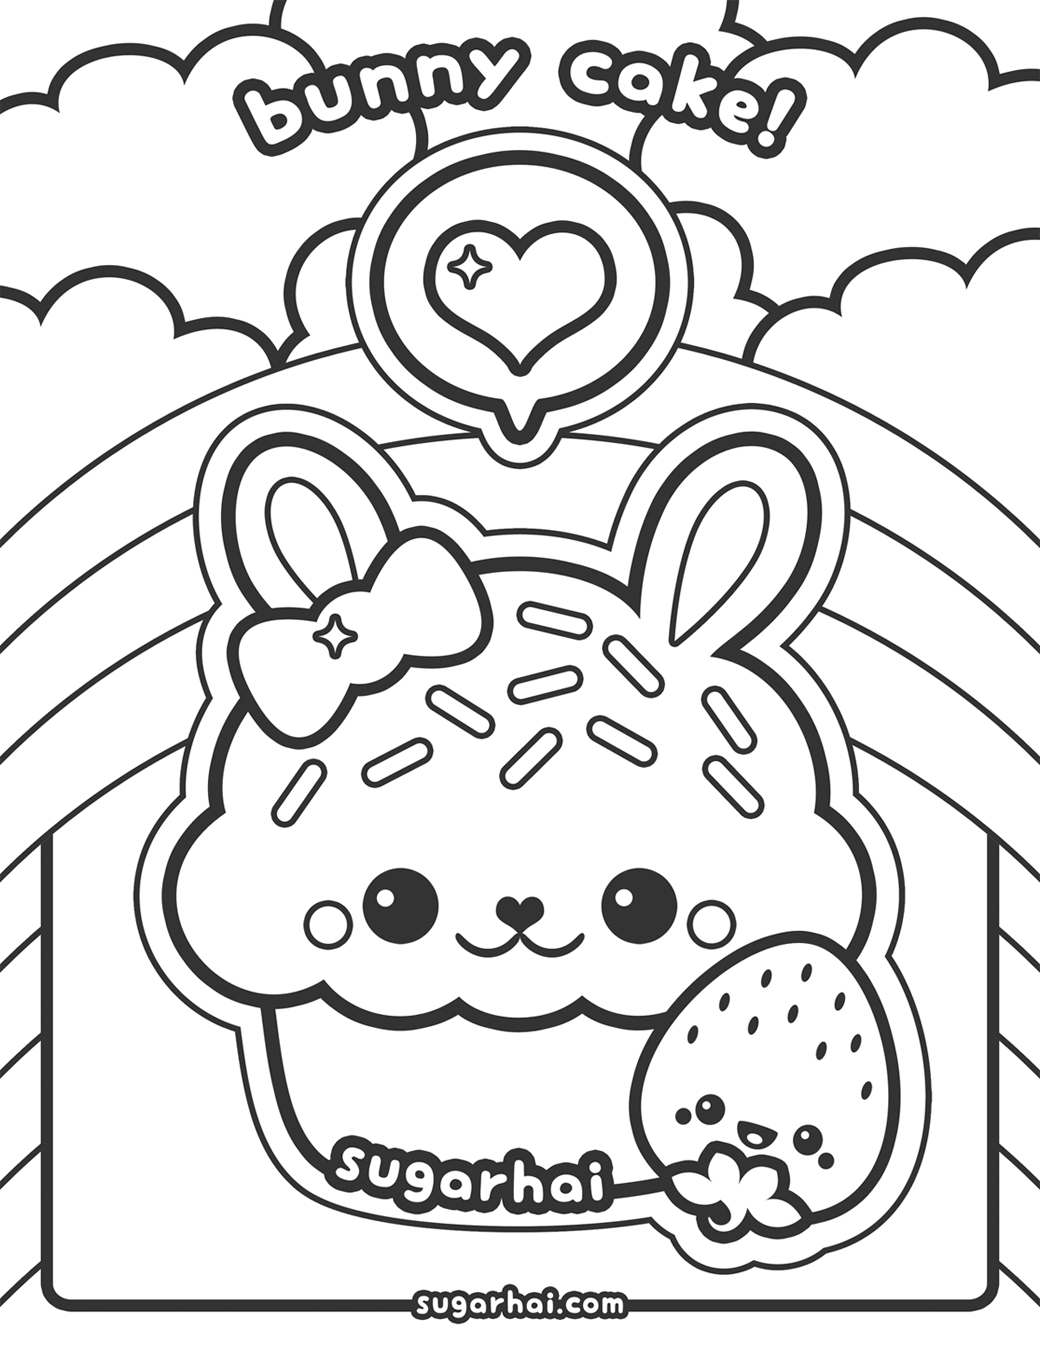 Cute Bunny Cupcake Coloring Page